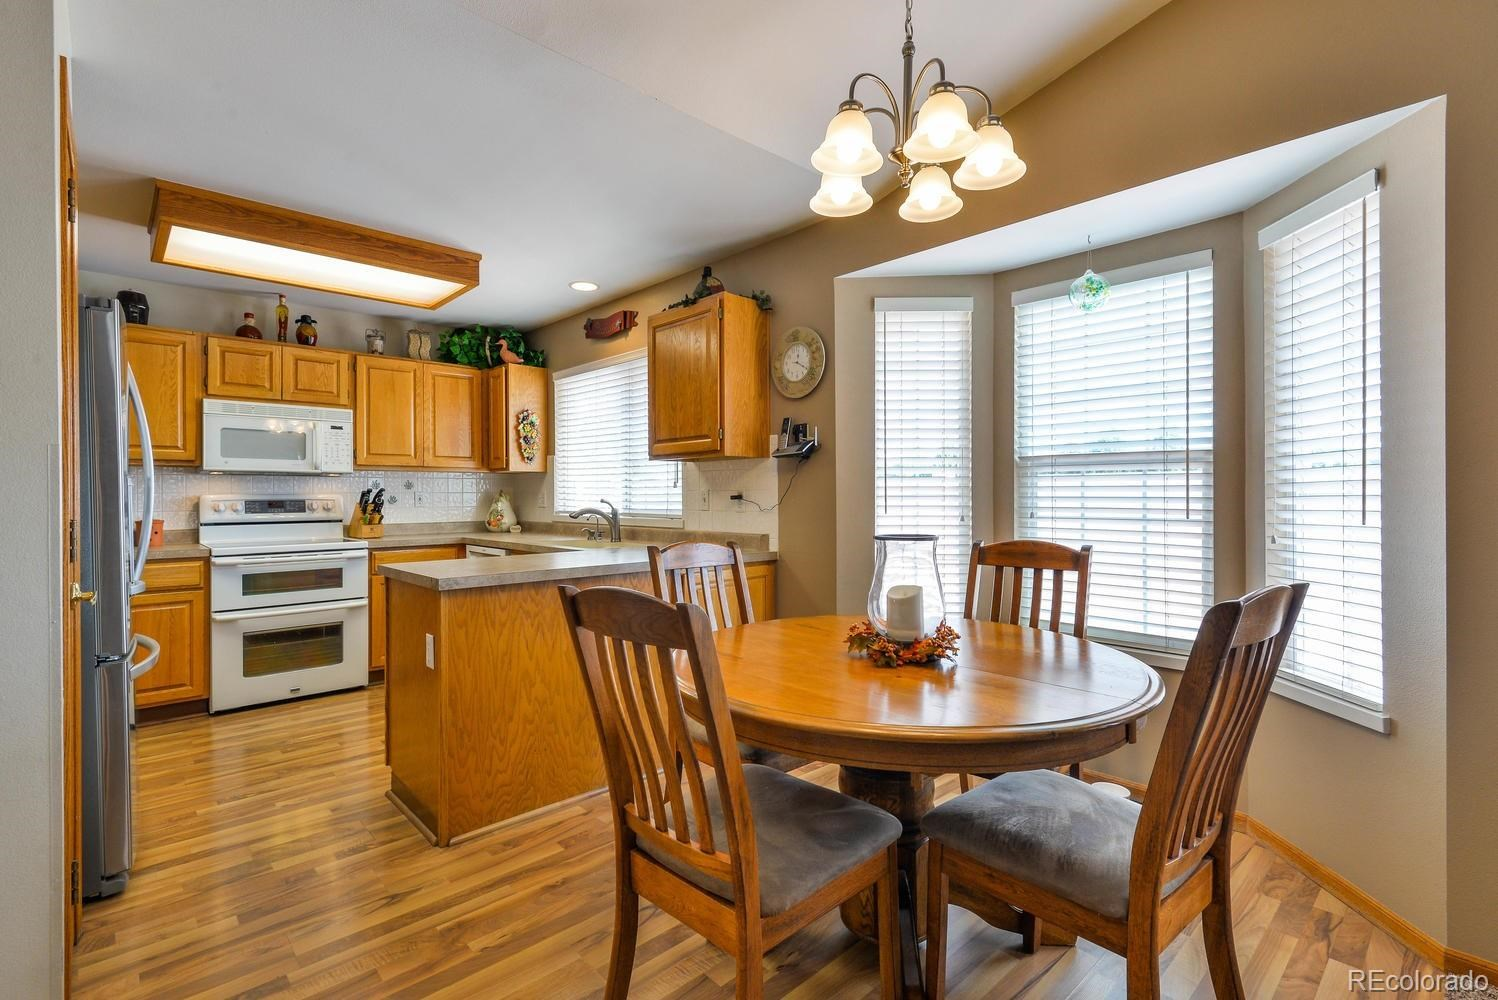 MLS# 5717707 - 4 - 3037 Antelope Road, Fort Collins, CO 80525